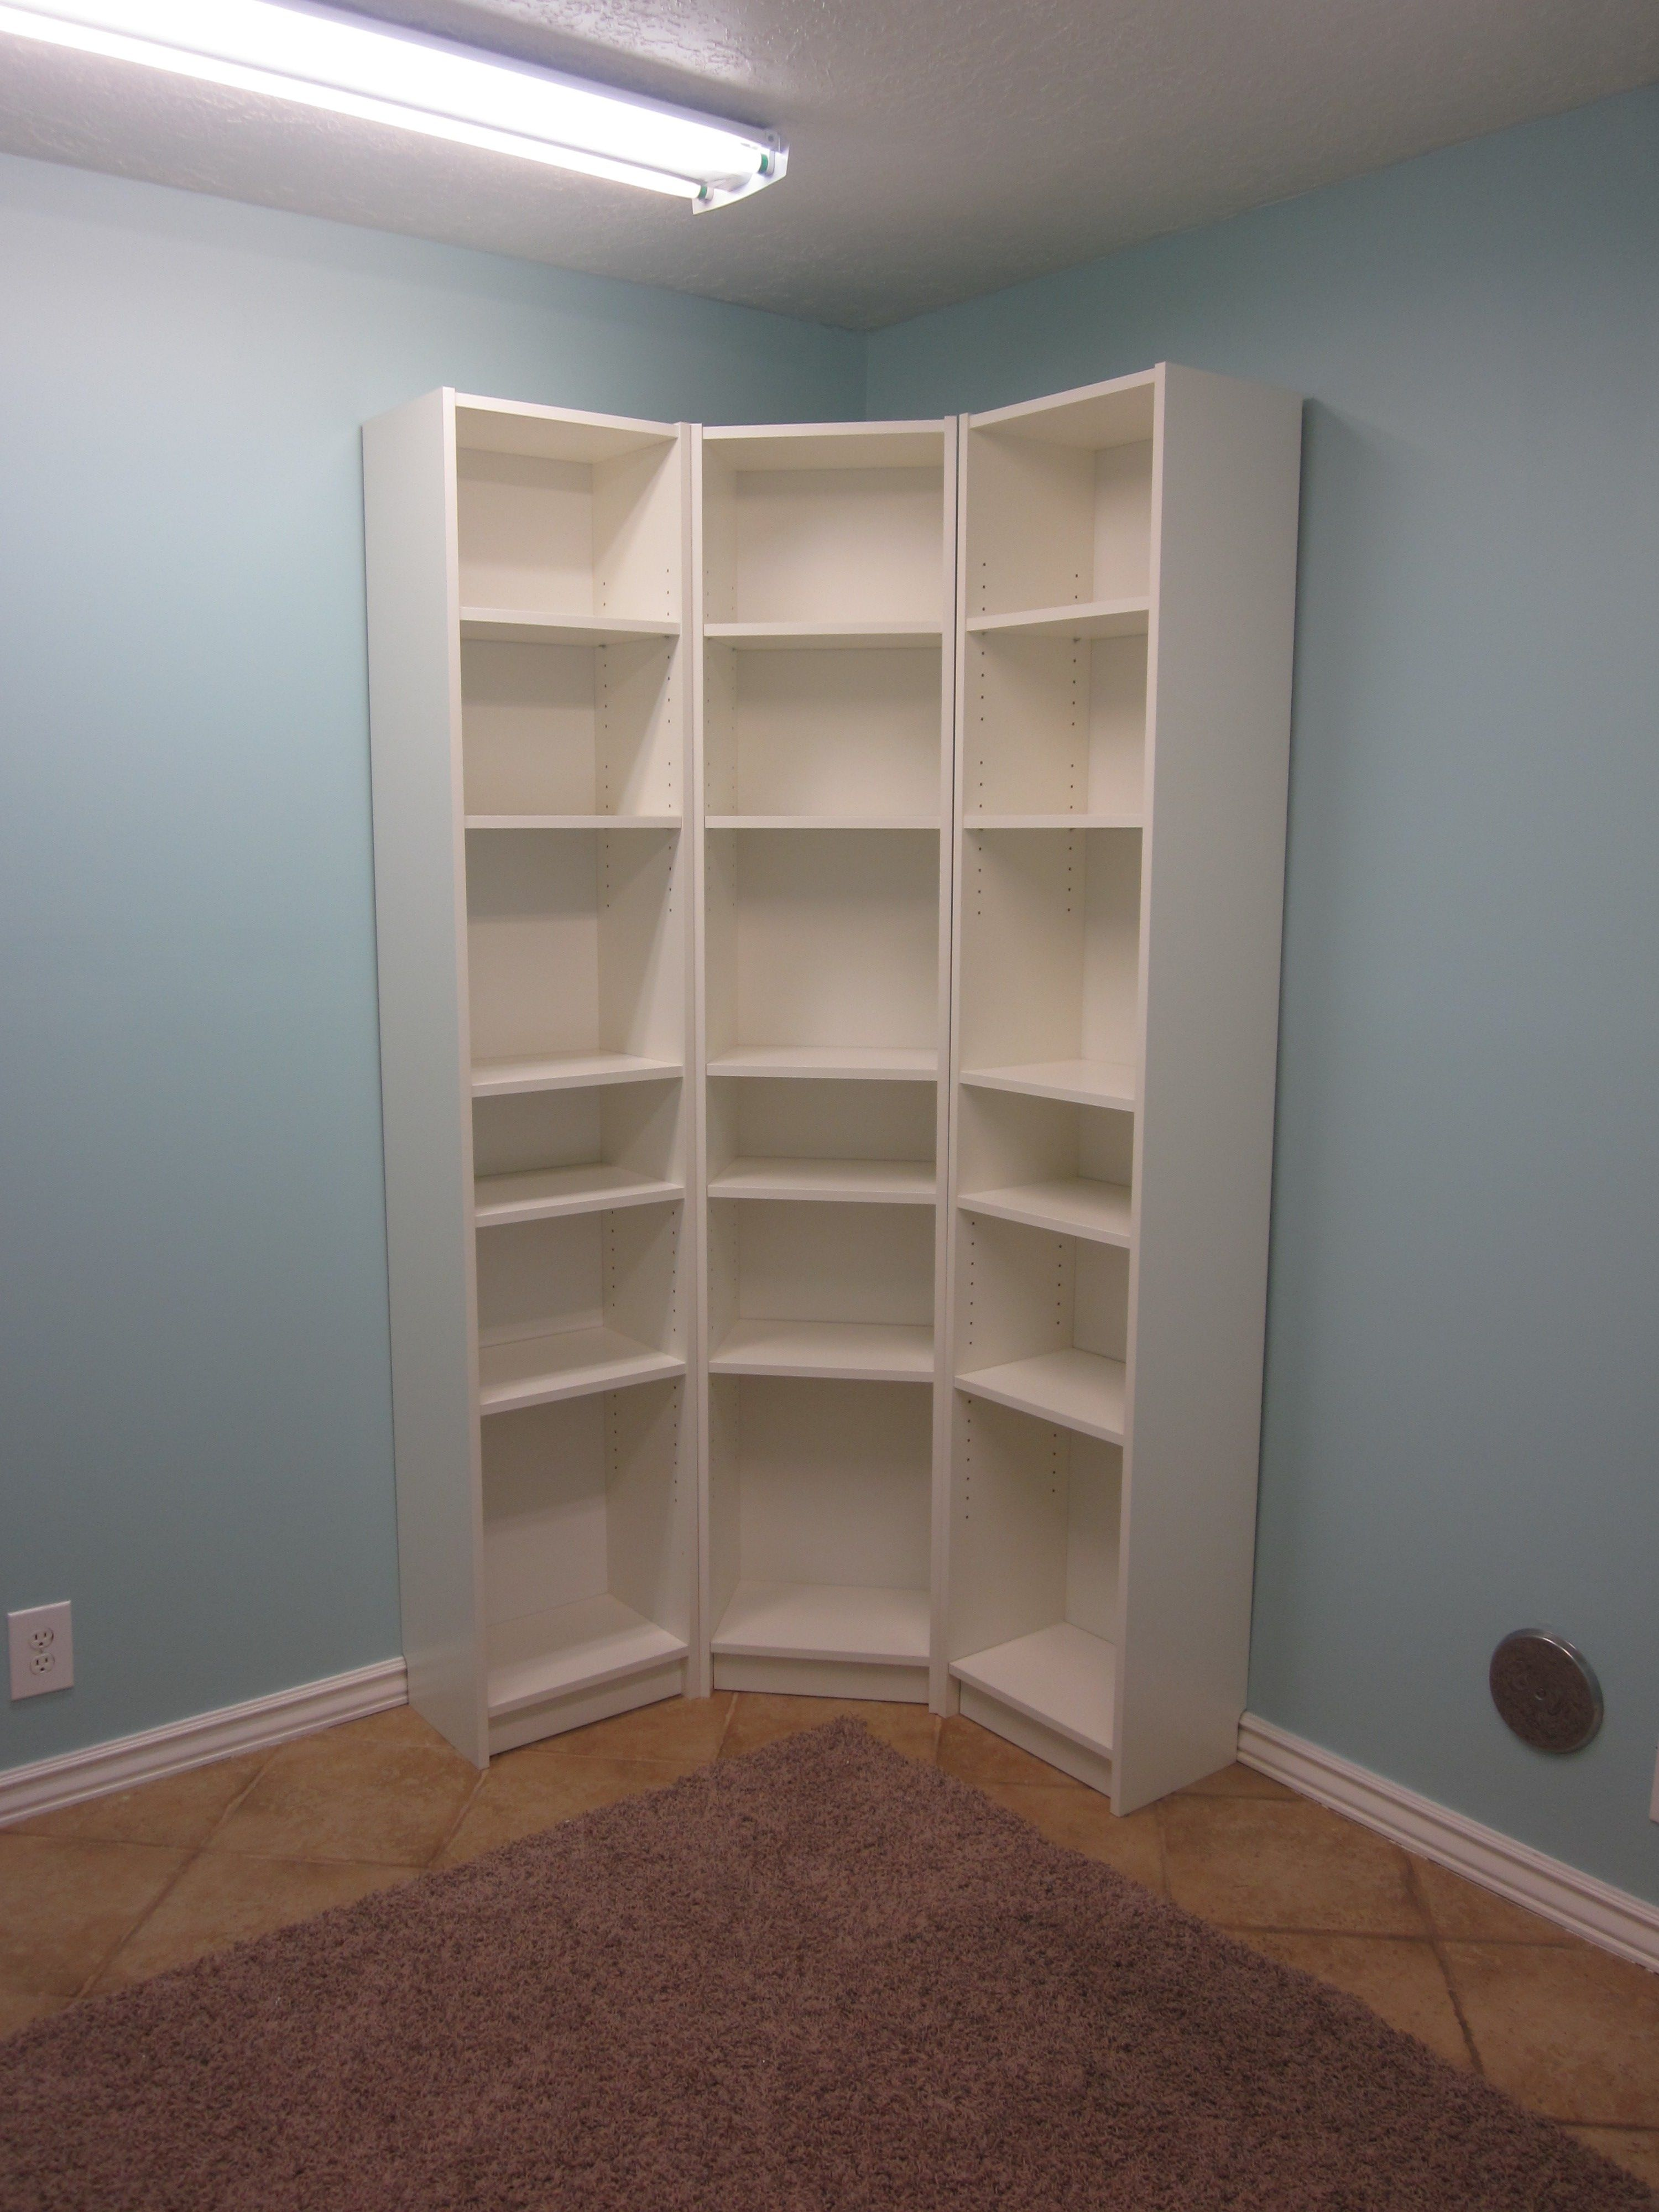 wade furniture staples wayfair bookcase reviews logan staple hill bookcases pdx